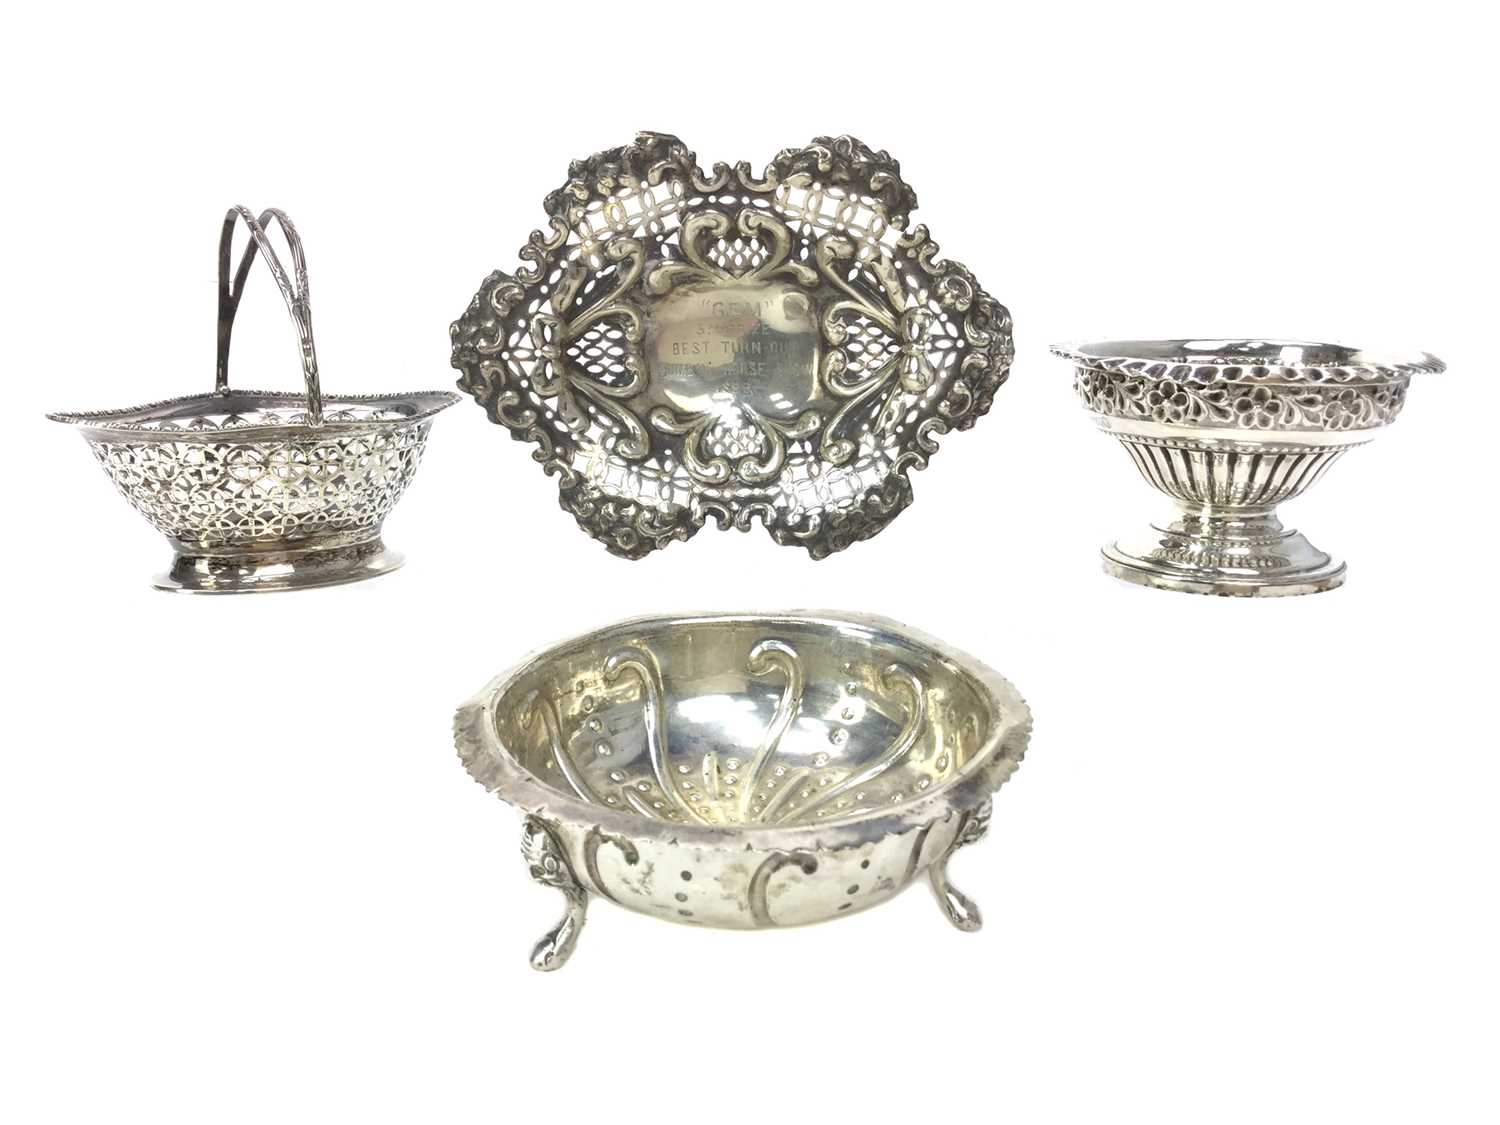 Lot 488 - A LOT OF FOUR SILVER BONBON DISHES